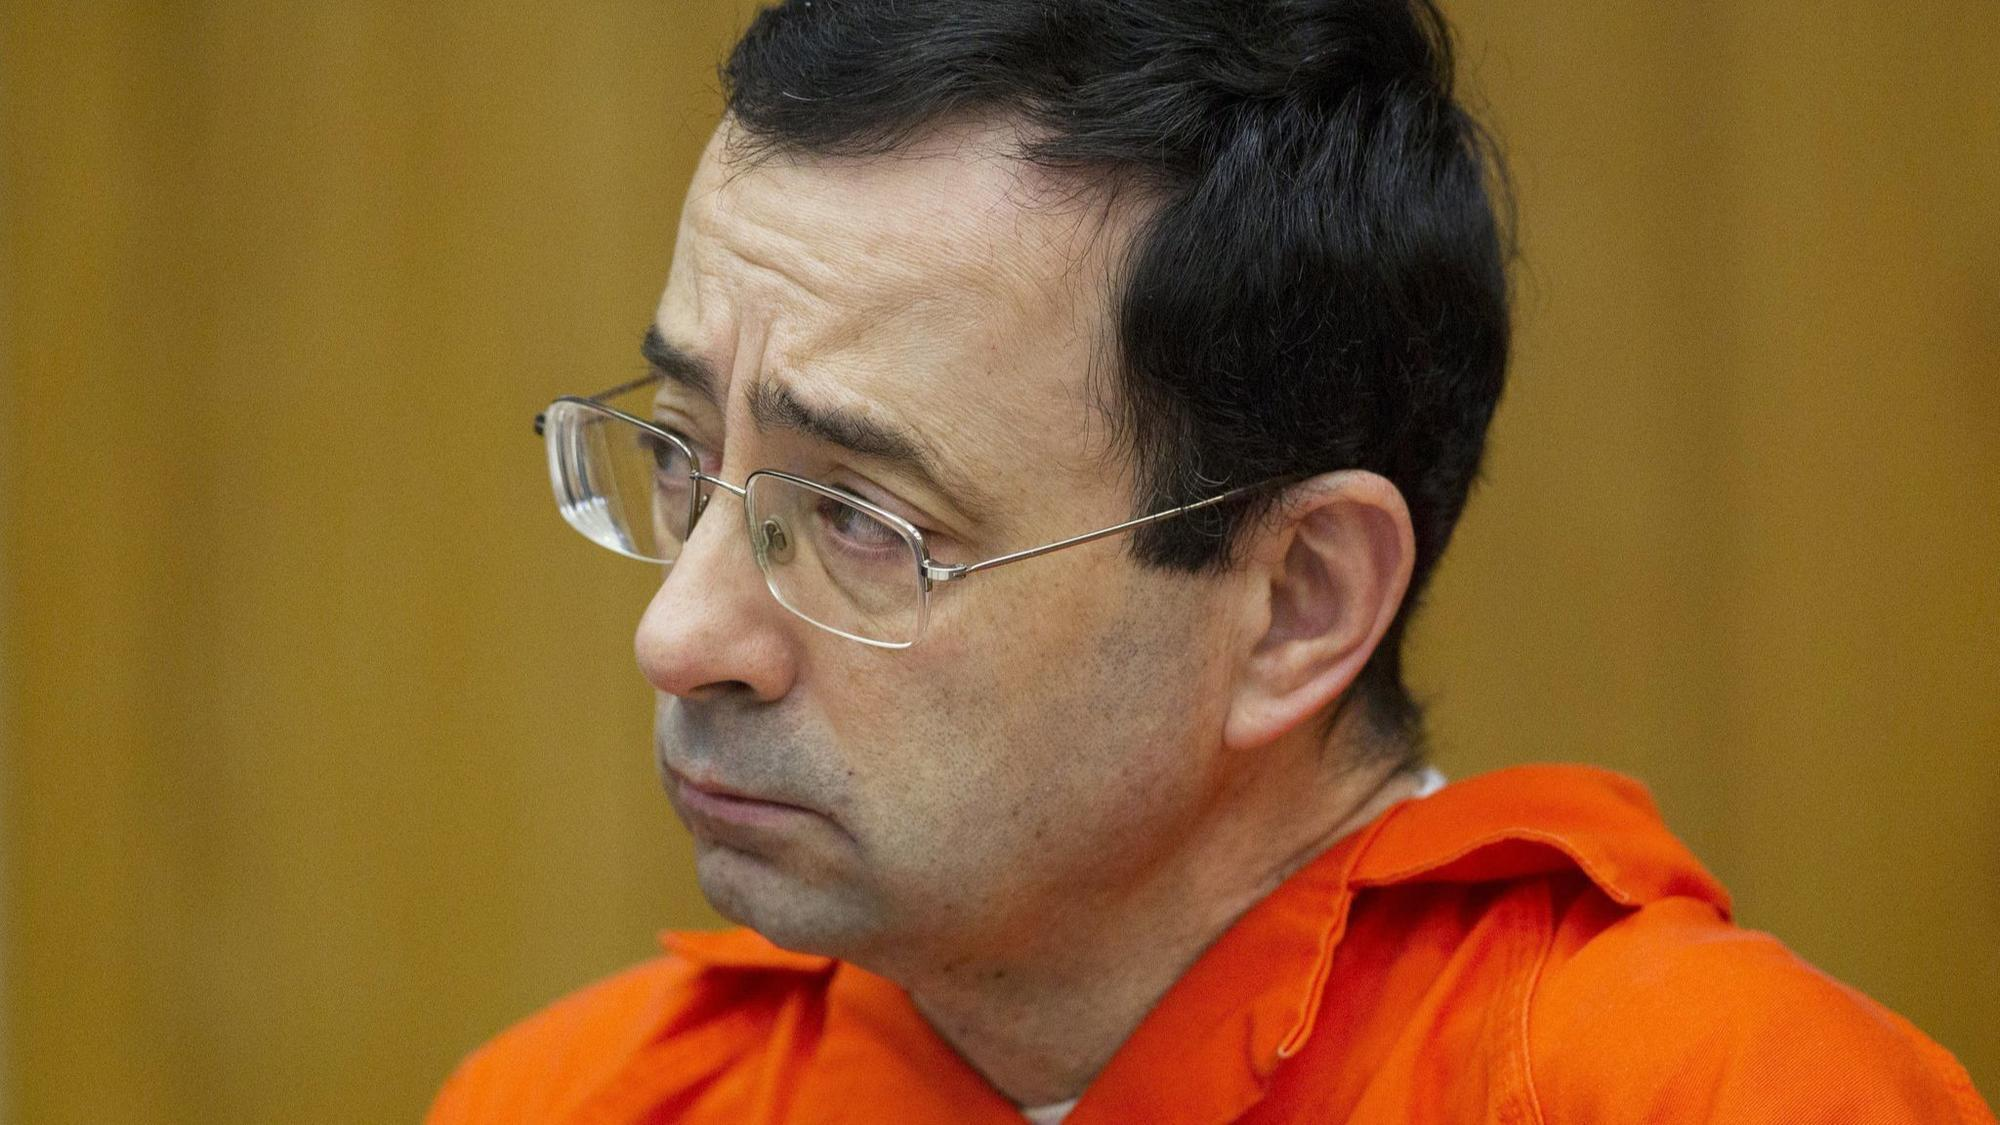 In wake of Larry Nassar scandal, USA Gymnastics elects new directors